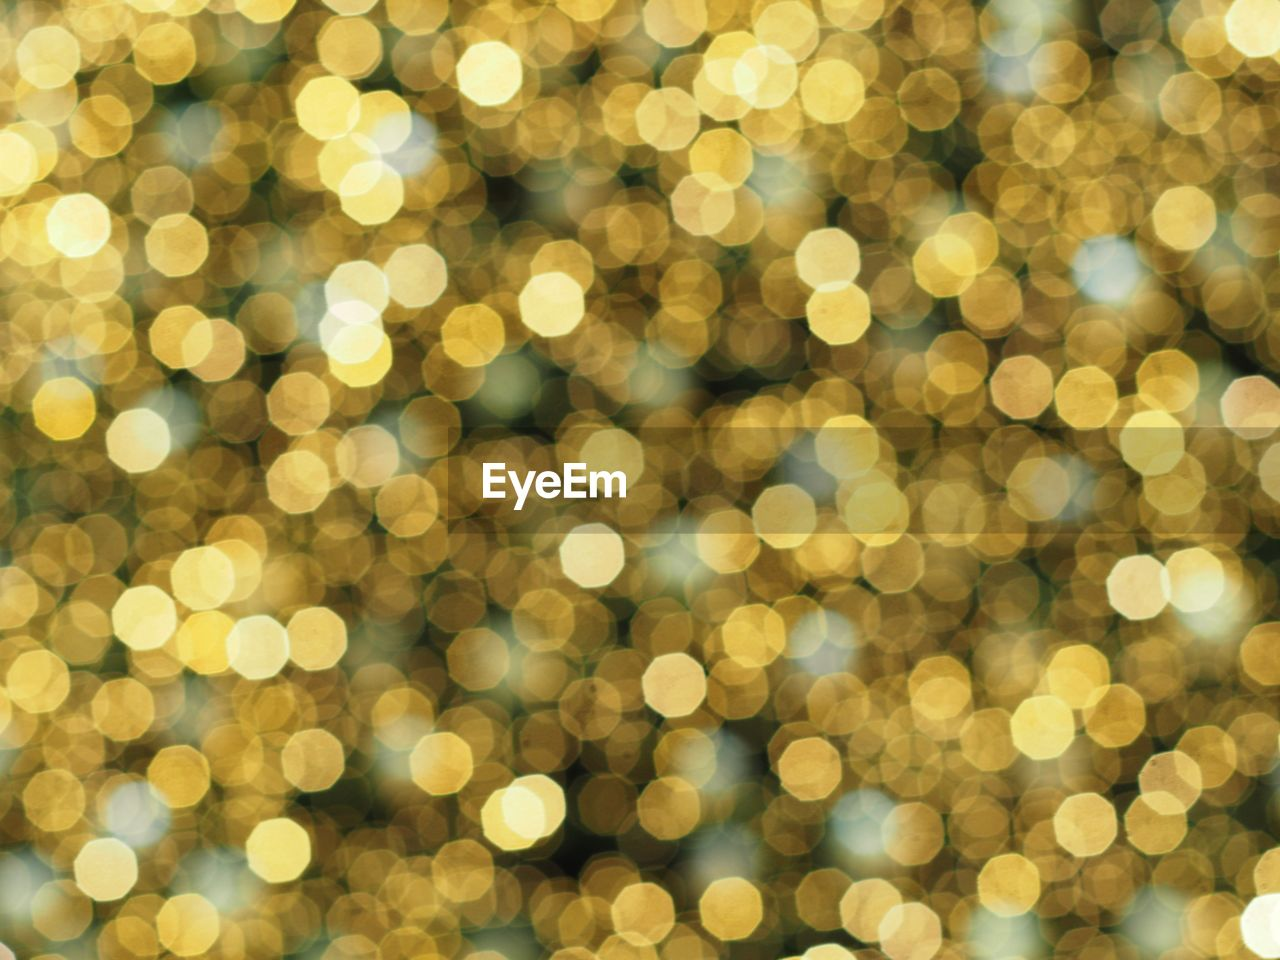 backgrounds, pattern, christmas, defocused, circle, geometric shape, shape, glowing, decoration, illuminated, holiday, abstract, no people, night, shiny, vibrant color, celebration, lighting equipment, gold colored, full frame, brightly lit, light, textured effect, bright